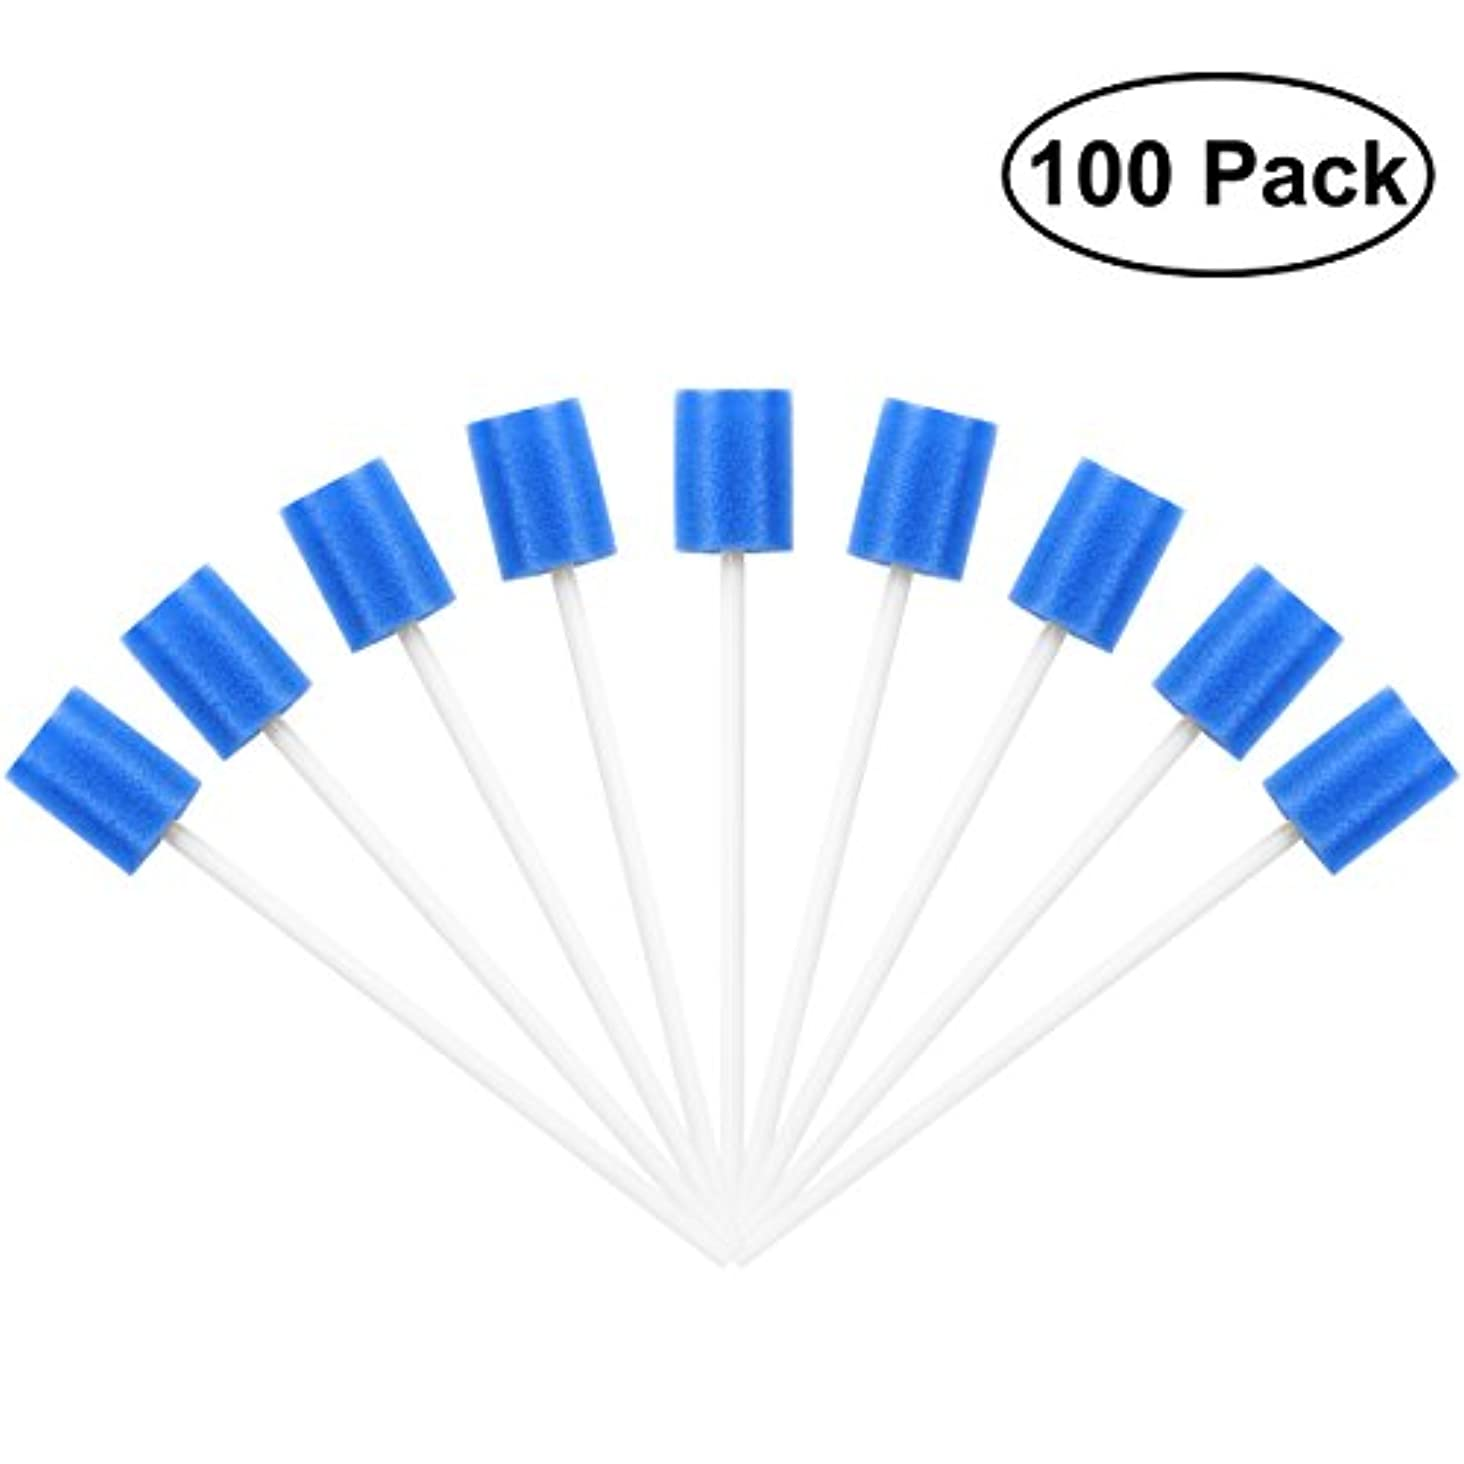 計算可能リズムデザートROSENICE Mouth Sponges Dental Swabs 100Pcs Disposable Oral Care Swabs (Blue)